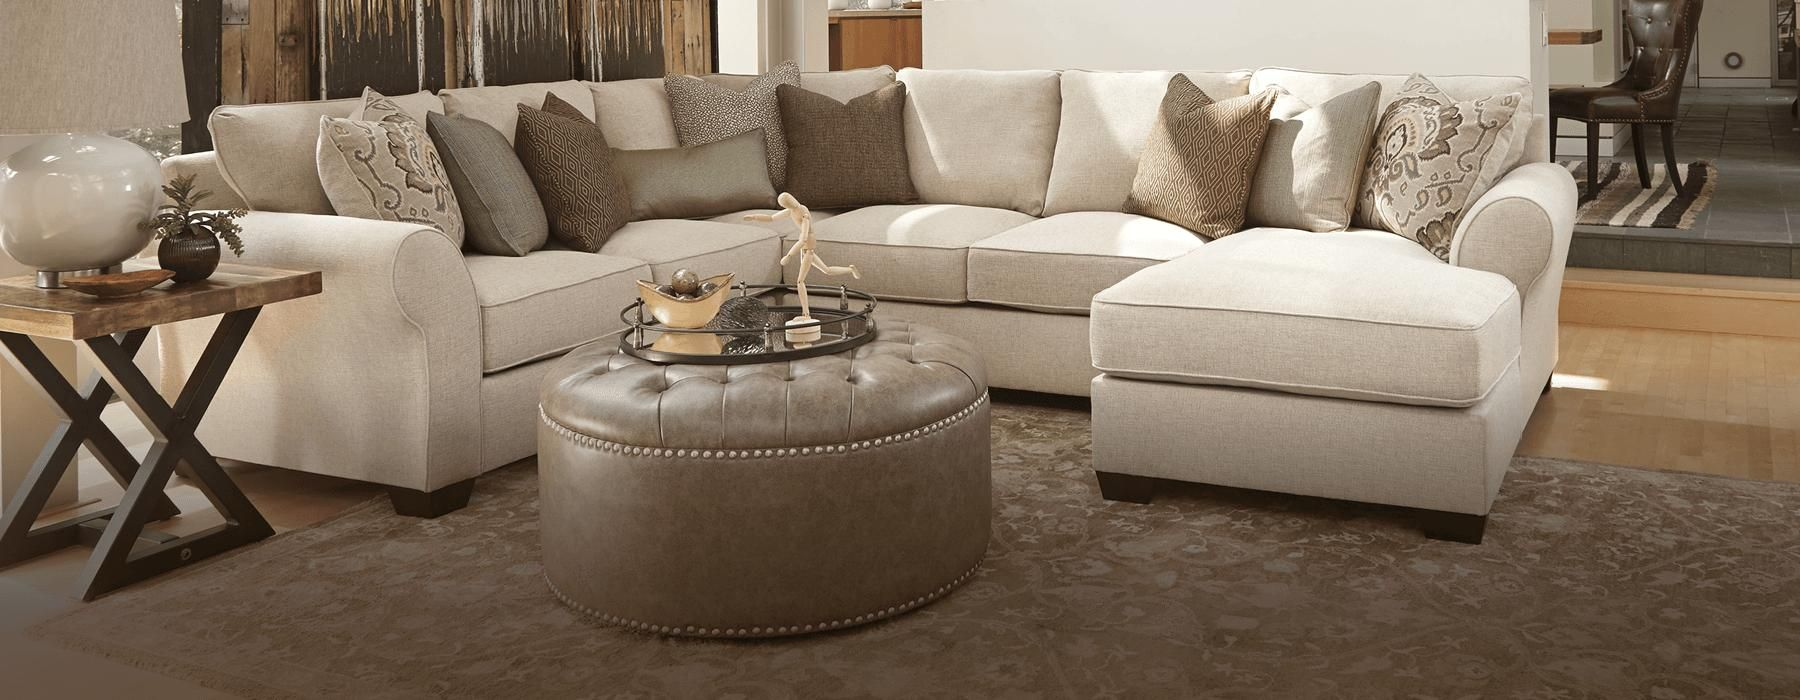 Ashley Furniture Homestore Canada With Images Ashley